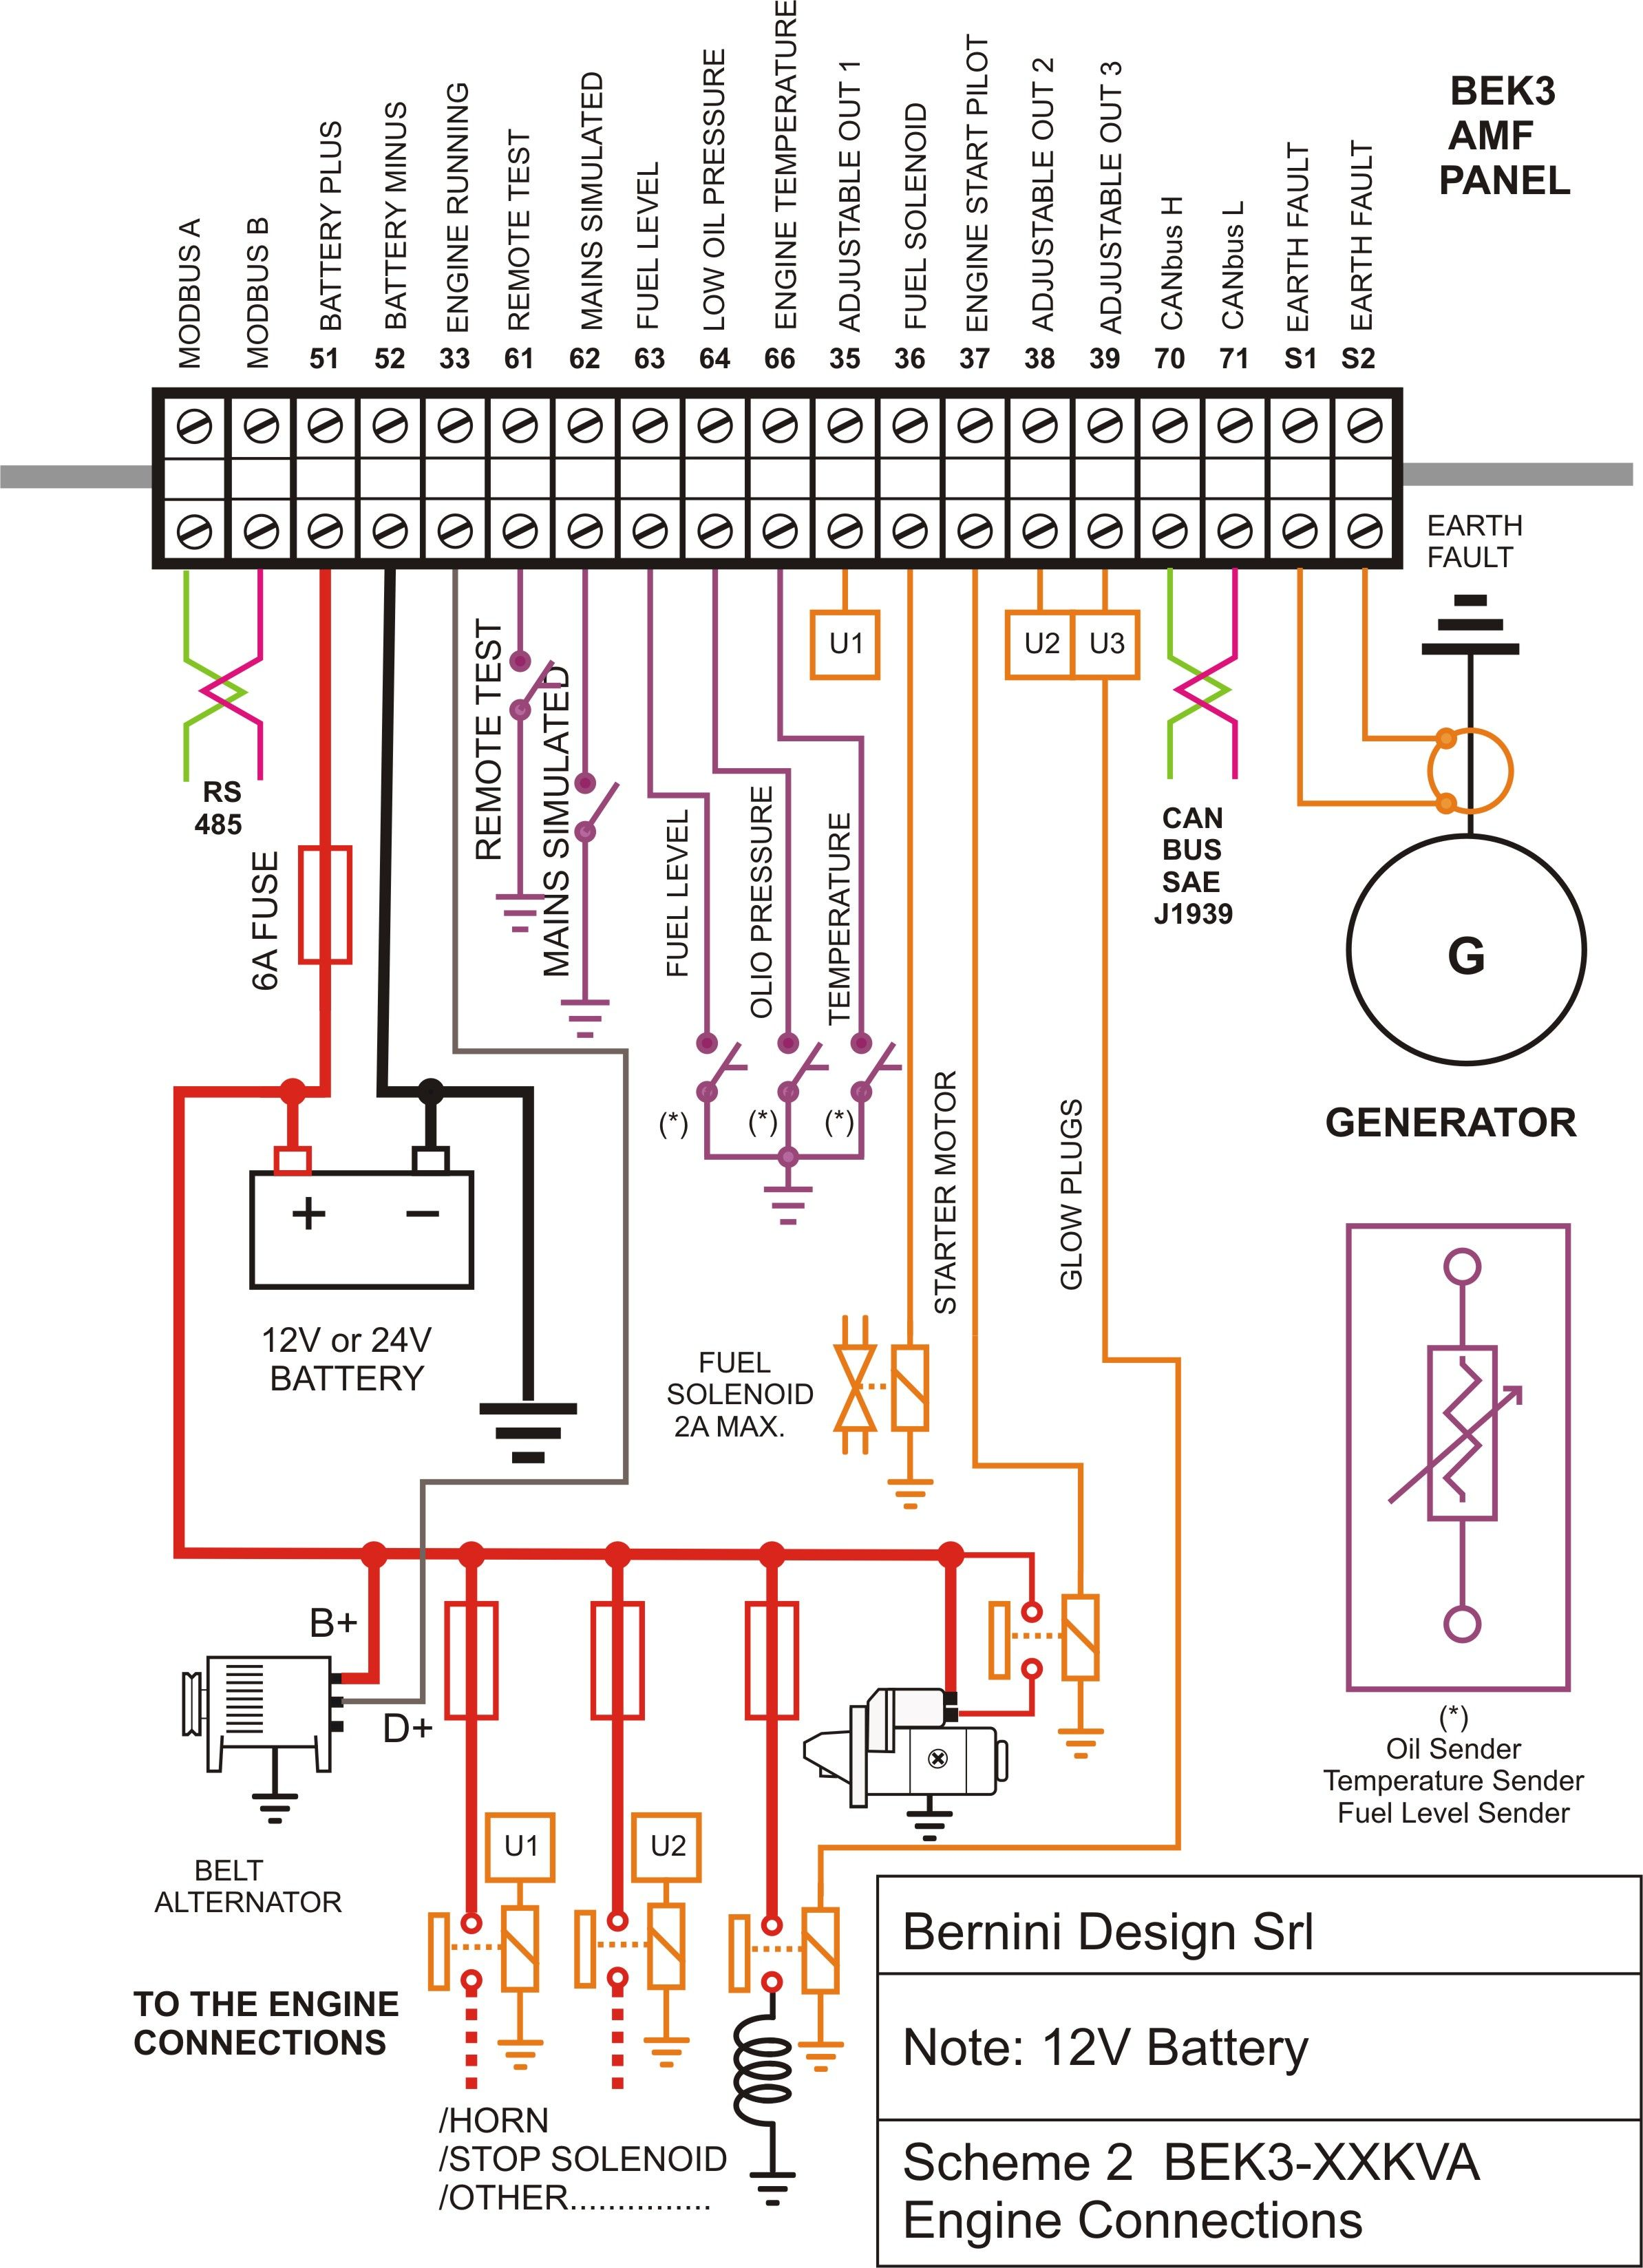 diesel generator control panel wiring diagram engine ... portable generator voltage control wiring diagram generator engine control wiring diagram